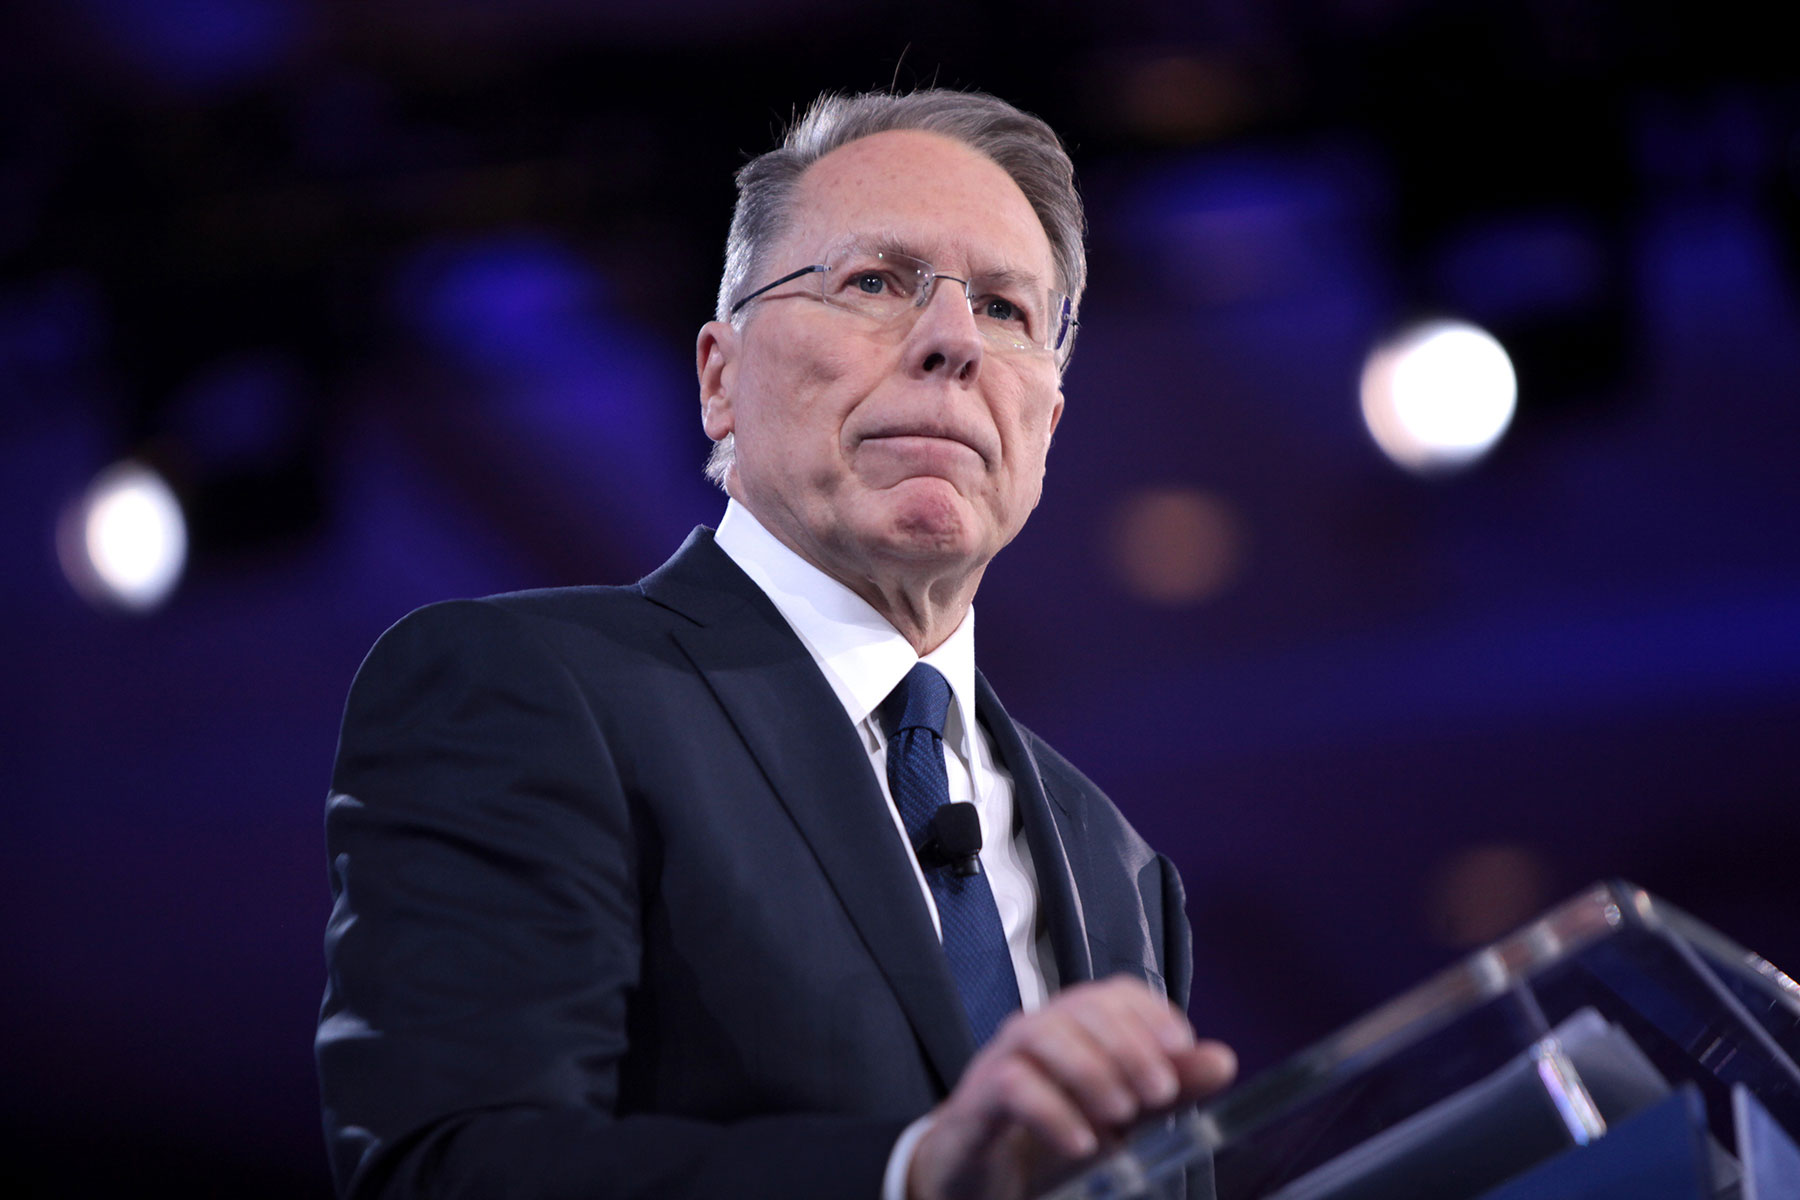 Scoot: Is the NRA's acceptance of gun ban at convention hypocritical?